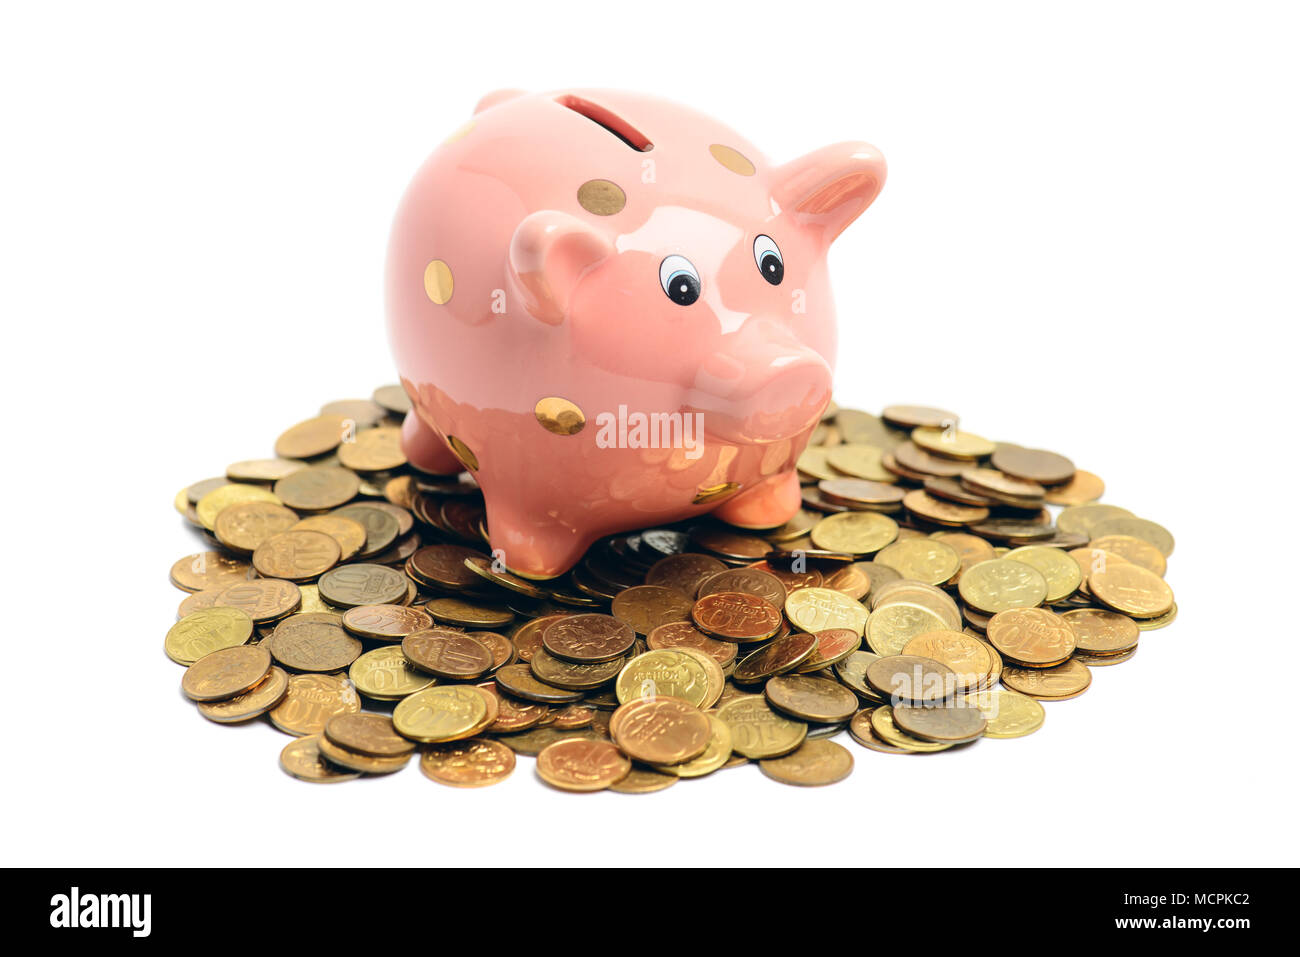 Lucky piggy coin bank sur coin heap isolé sur fond blanc Photo Stock